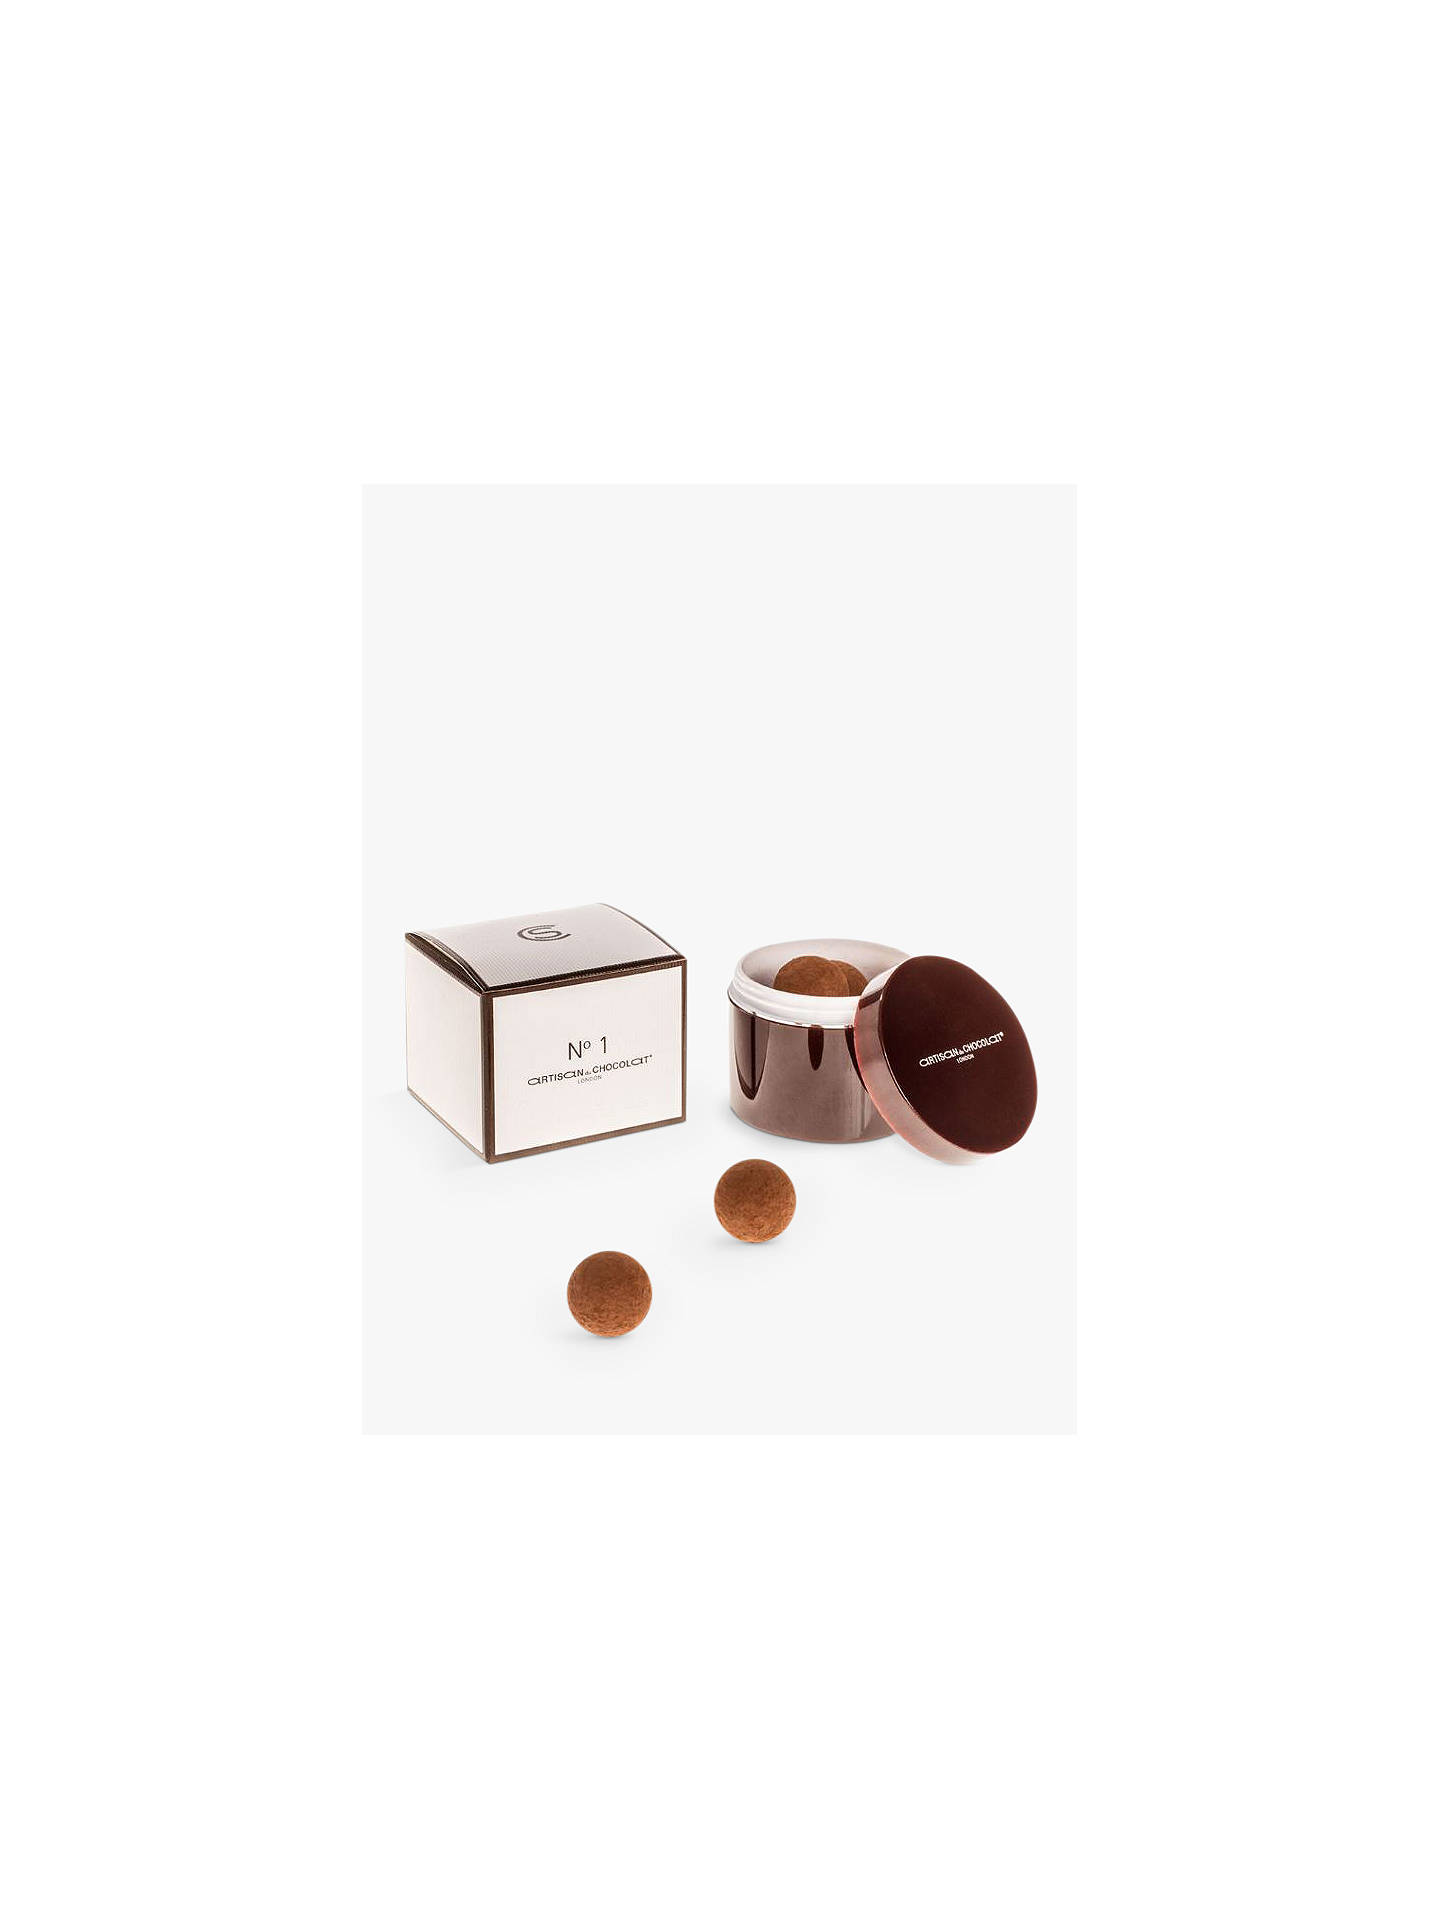 BuyArtisan du Chocolat No.1 Dark Chocolate Liquid Salted Caramels, Original, 125g Online at johnlewis.com